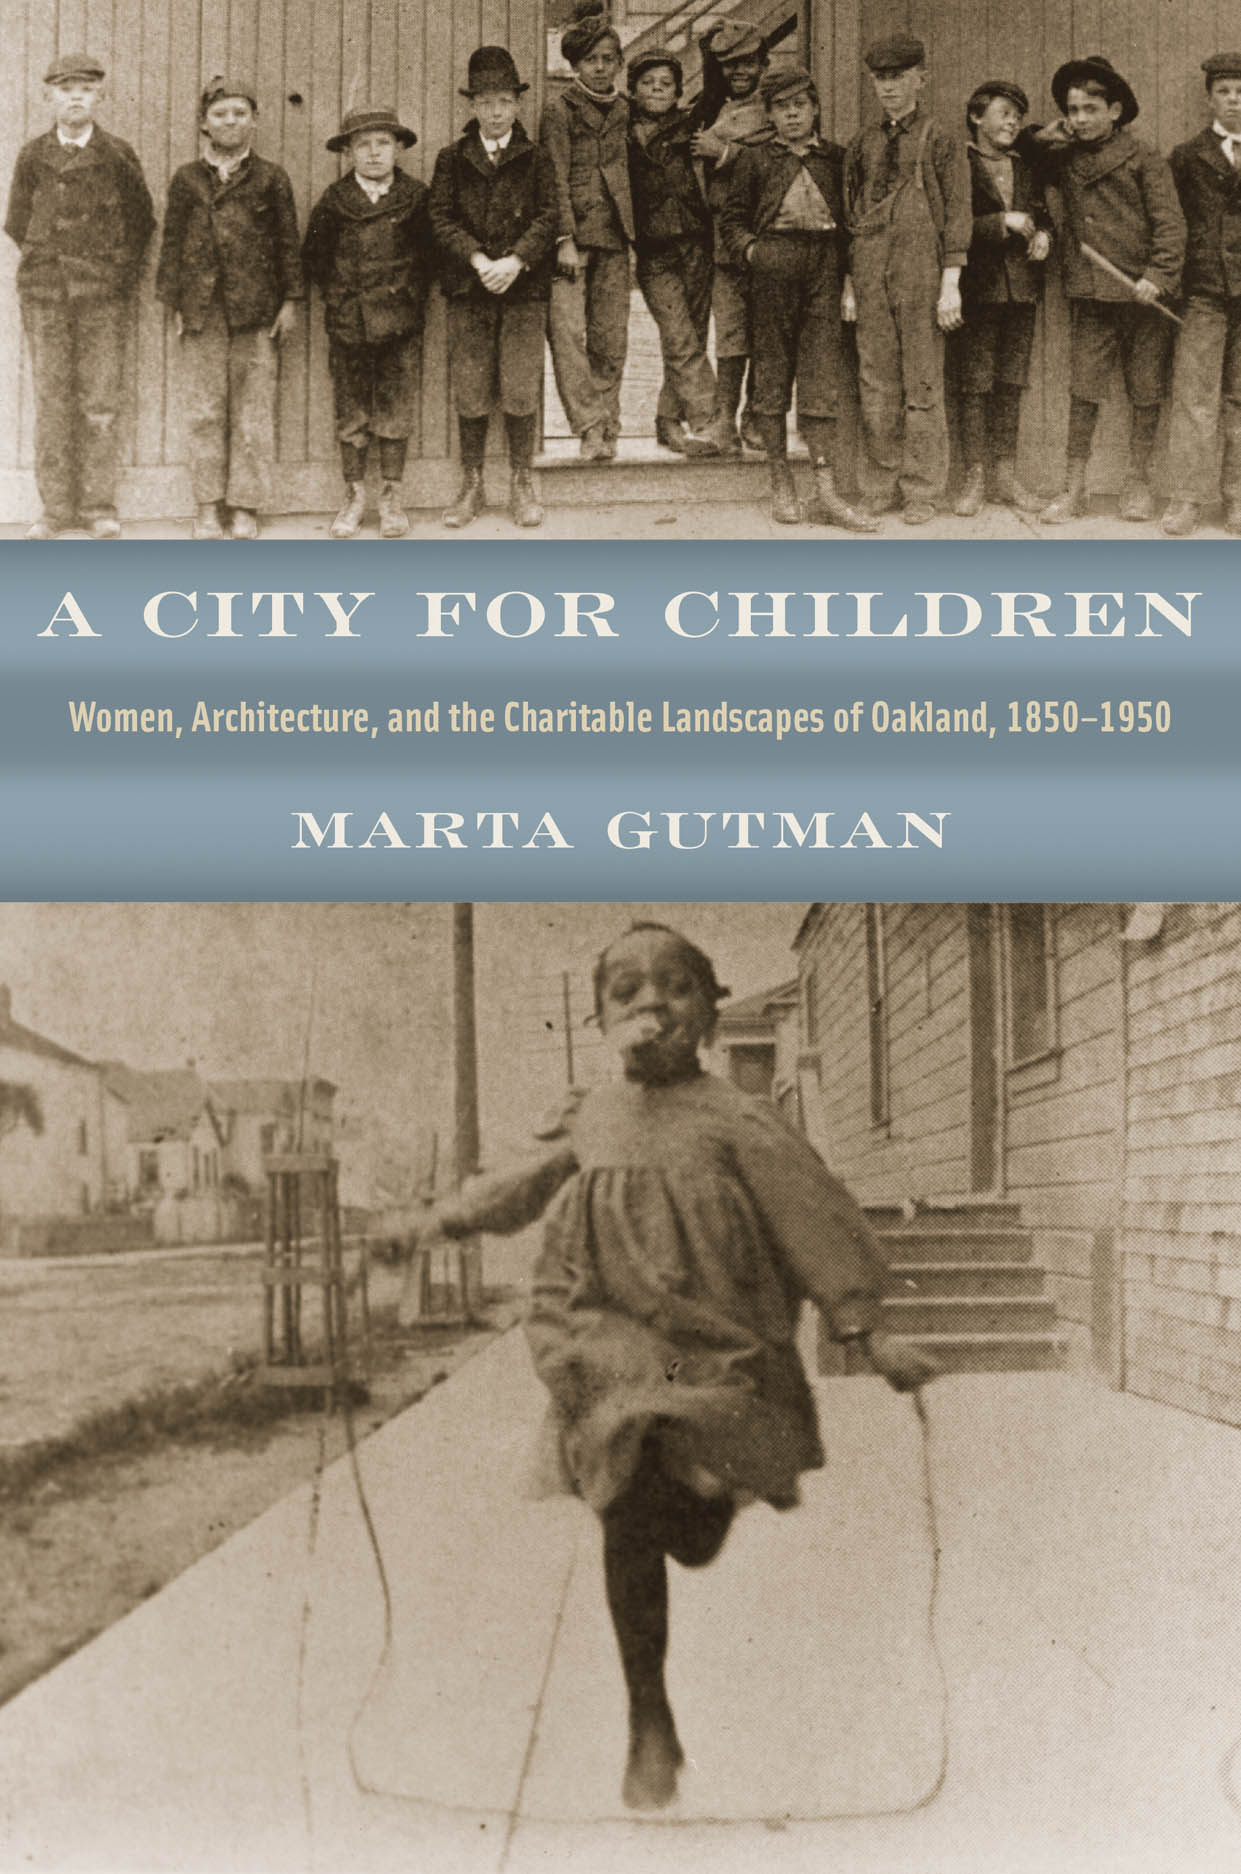 A City for Children